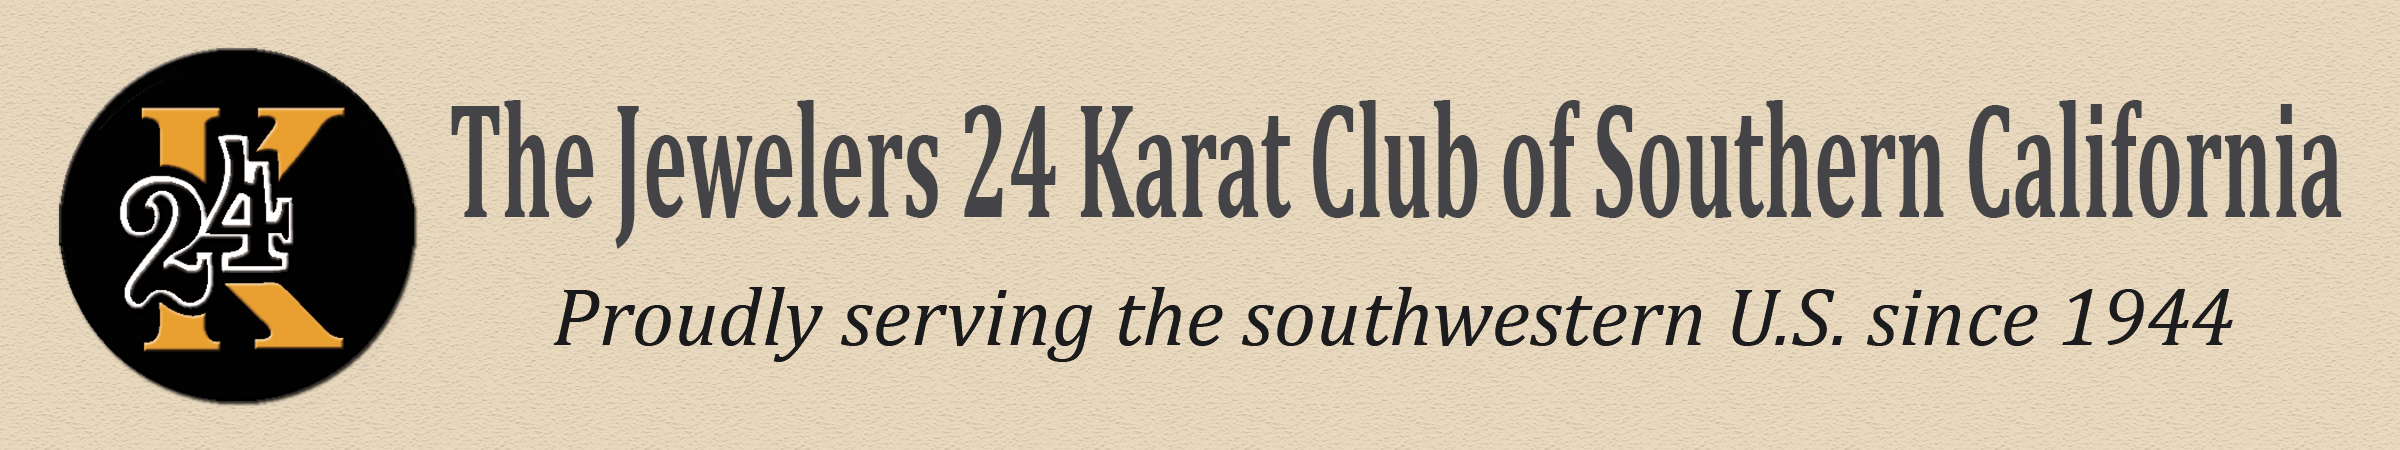 Jewelers 24 Karat Club of Southern California